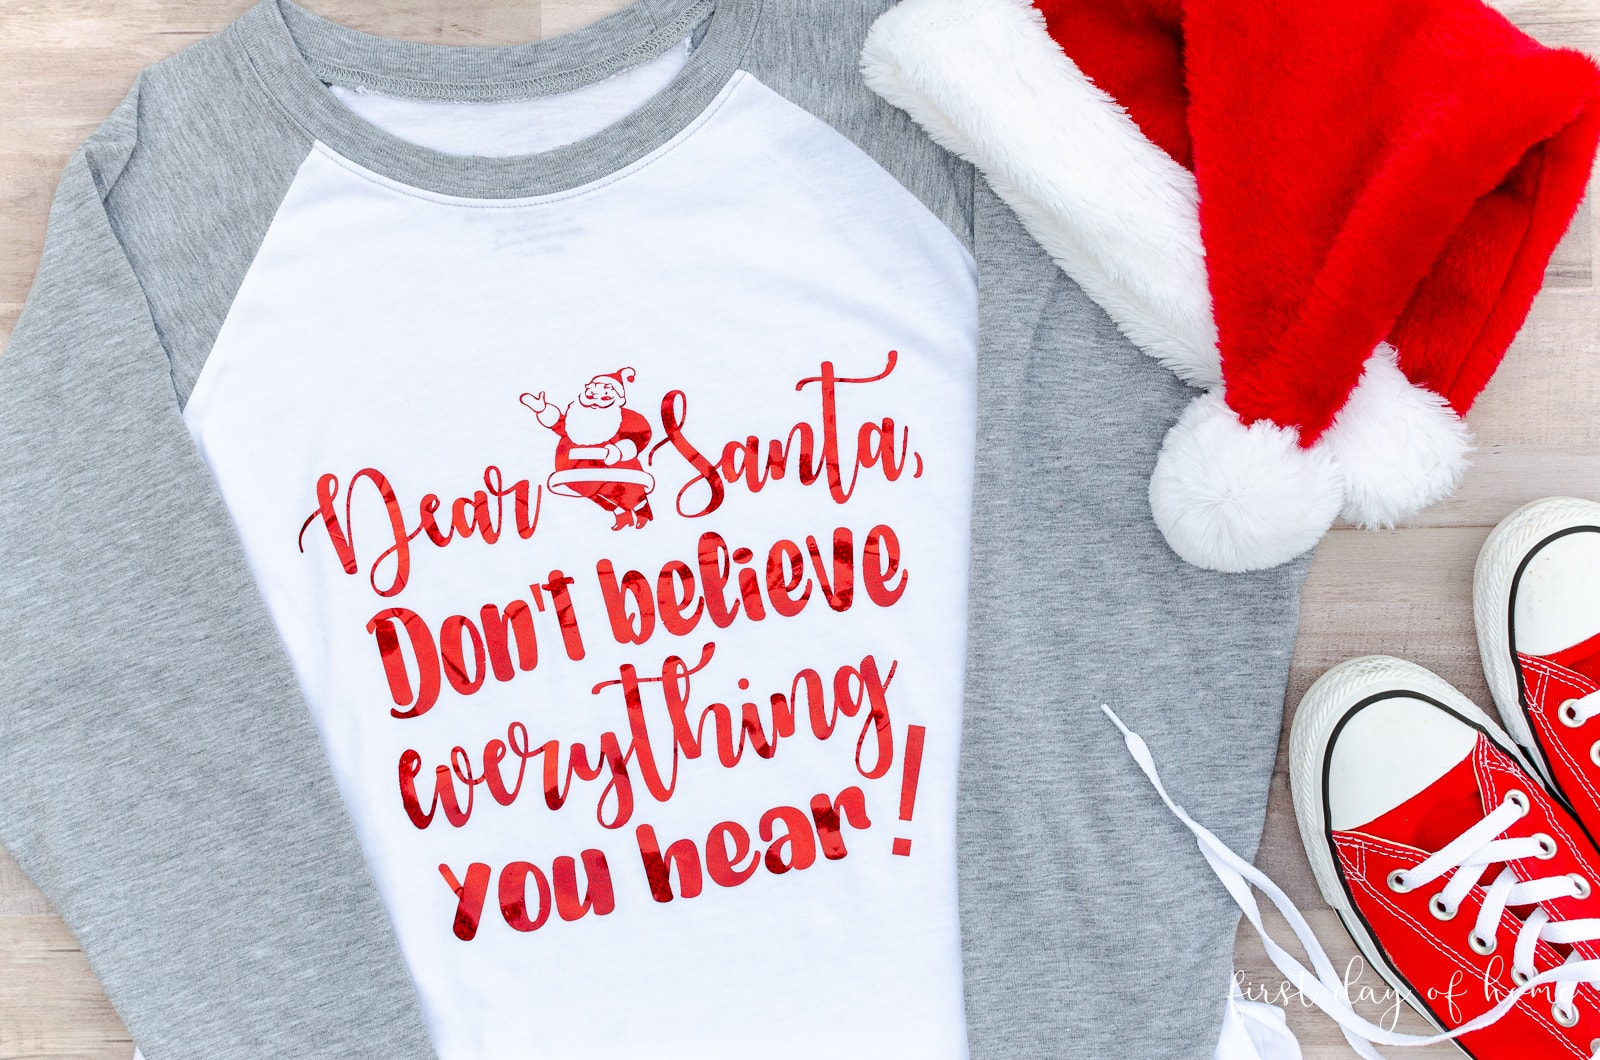 Santa SVG design in holographic heat transfer vinyl on grey and white raglan t-shirt with Santa hat and converse sneakers